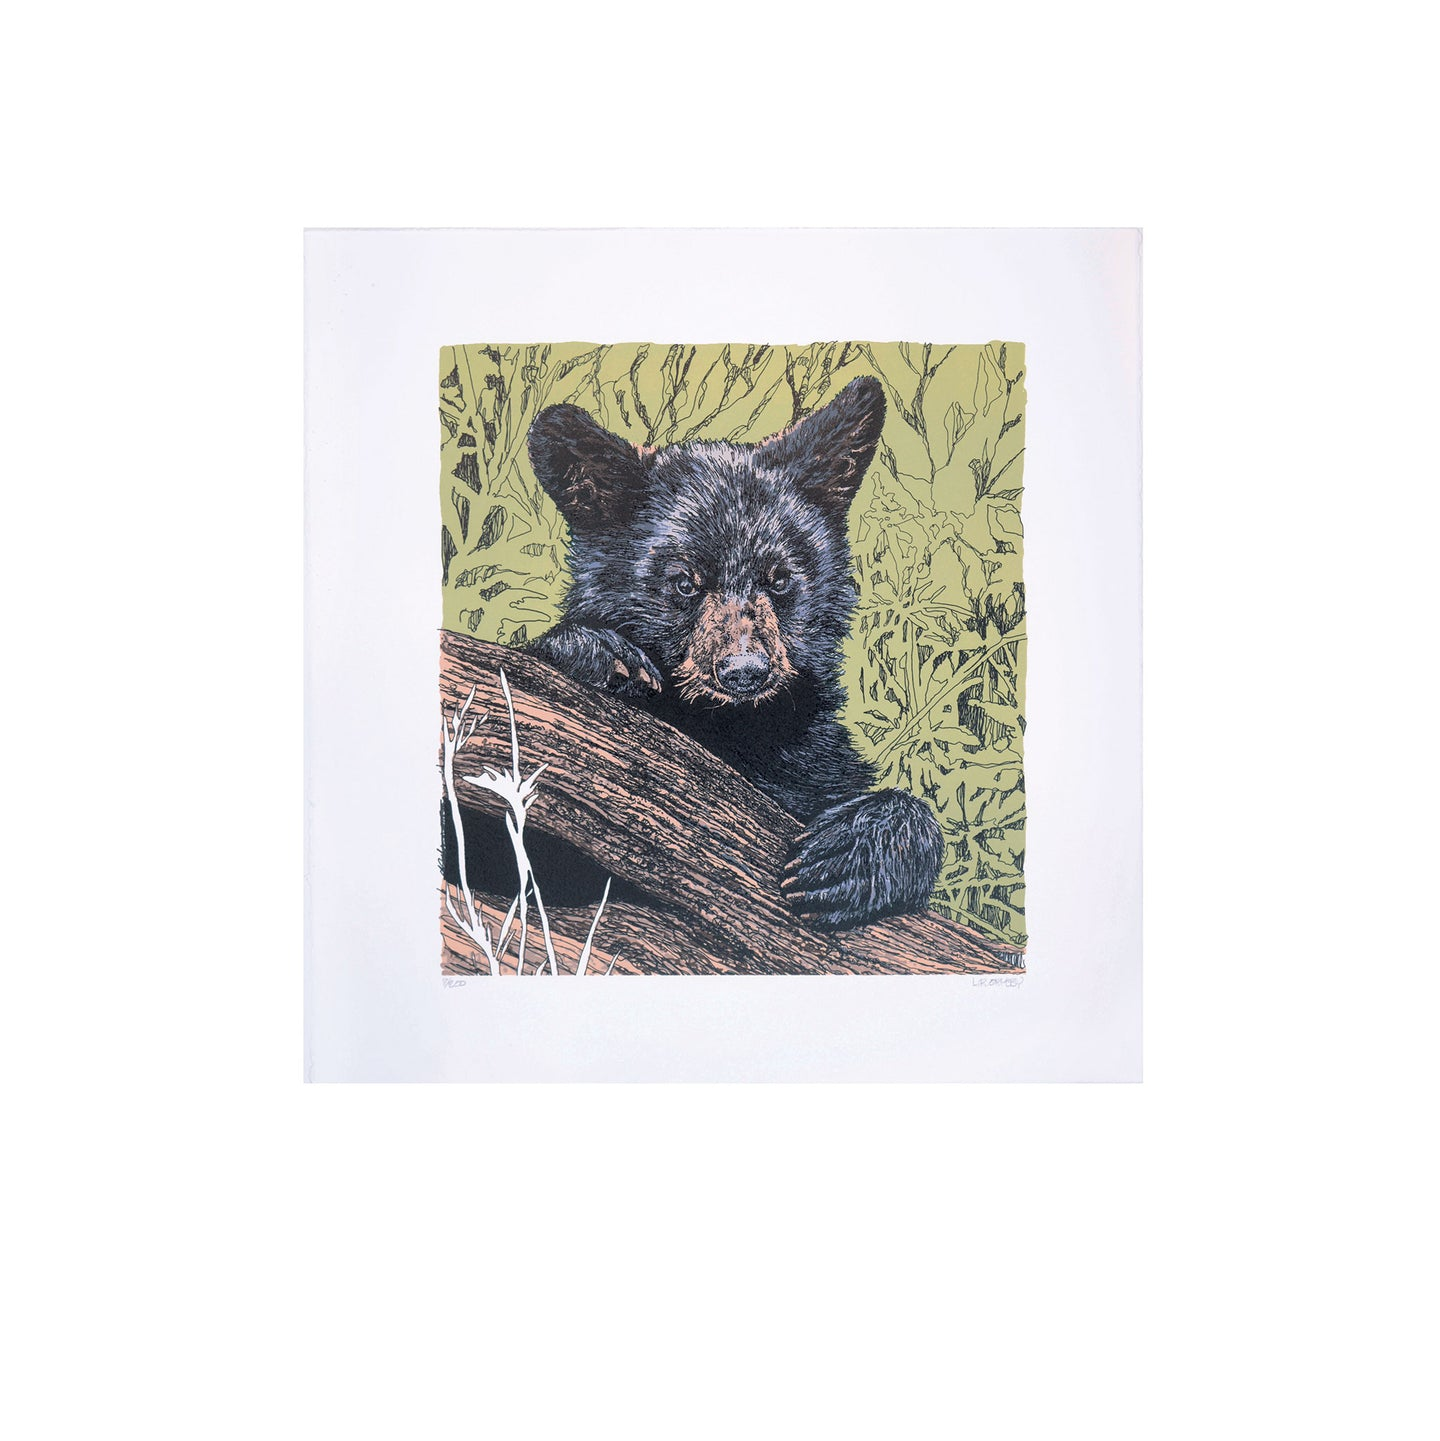 Black Bear cub lithograph framed, Great Smoky Mountain National Park, Tennessee